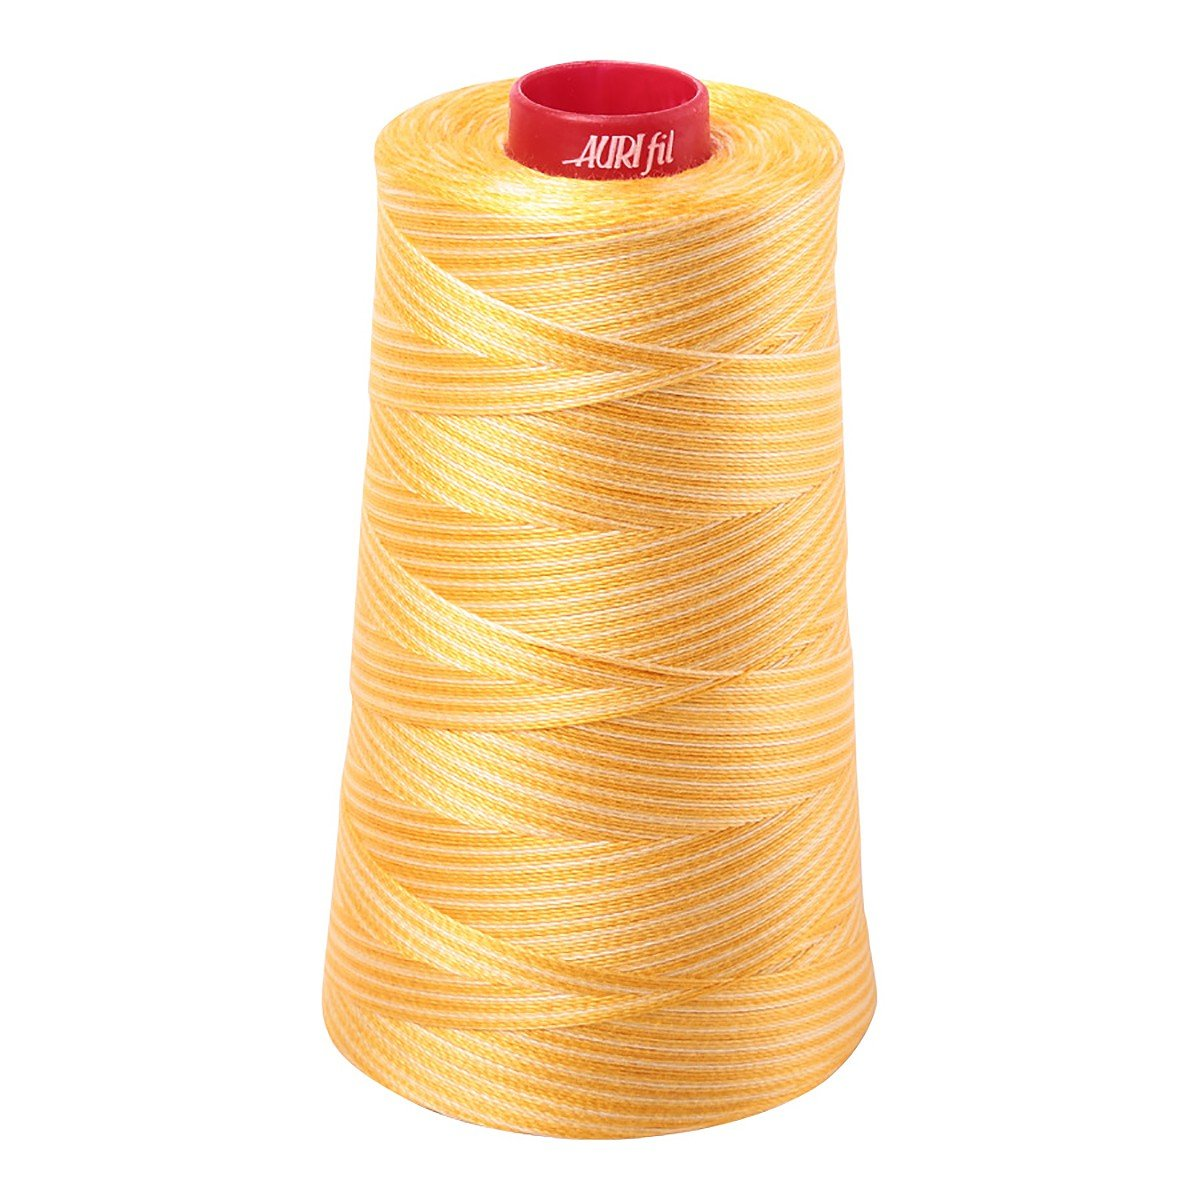 Mako (Cotton) Embroidery Thread 12wt 1931yd Variegated Golden Glow